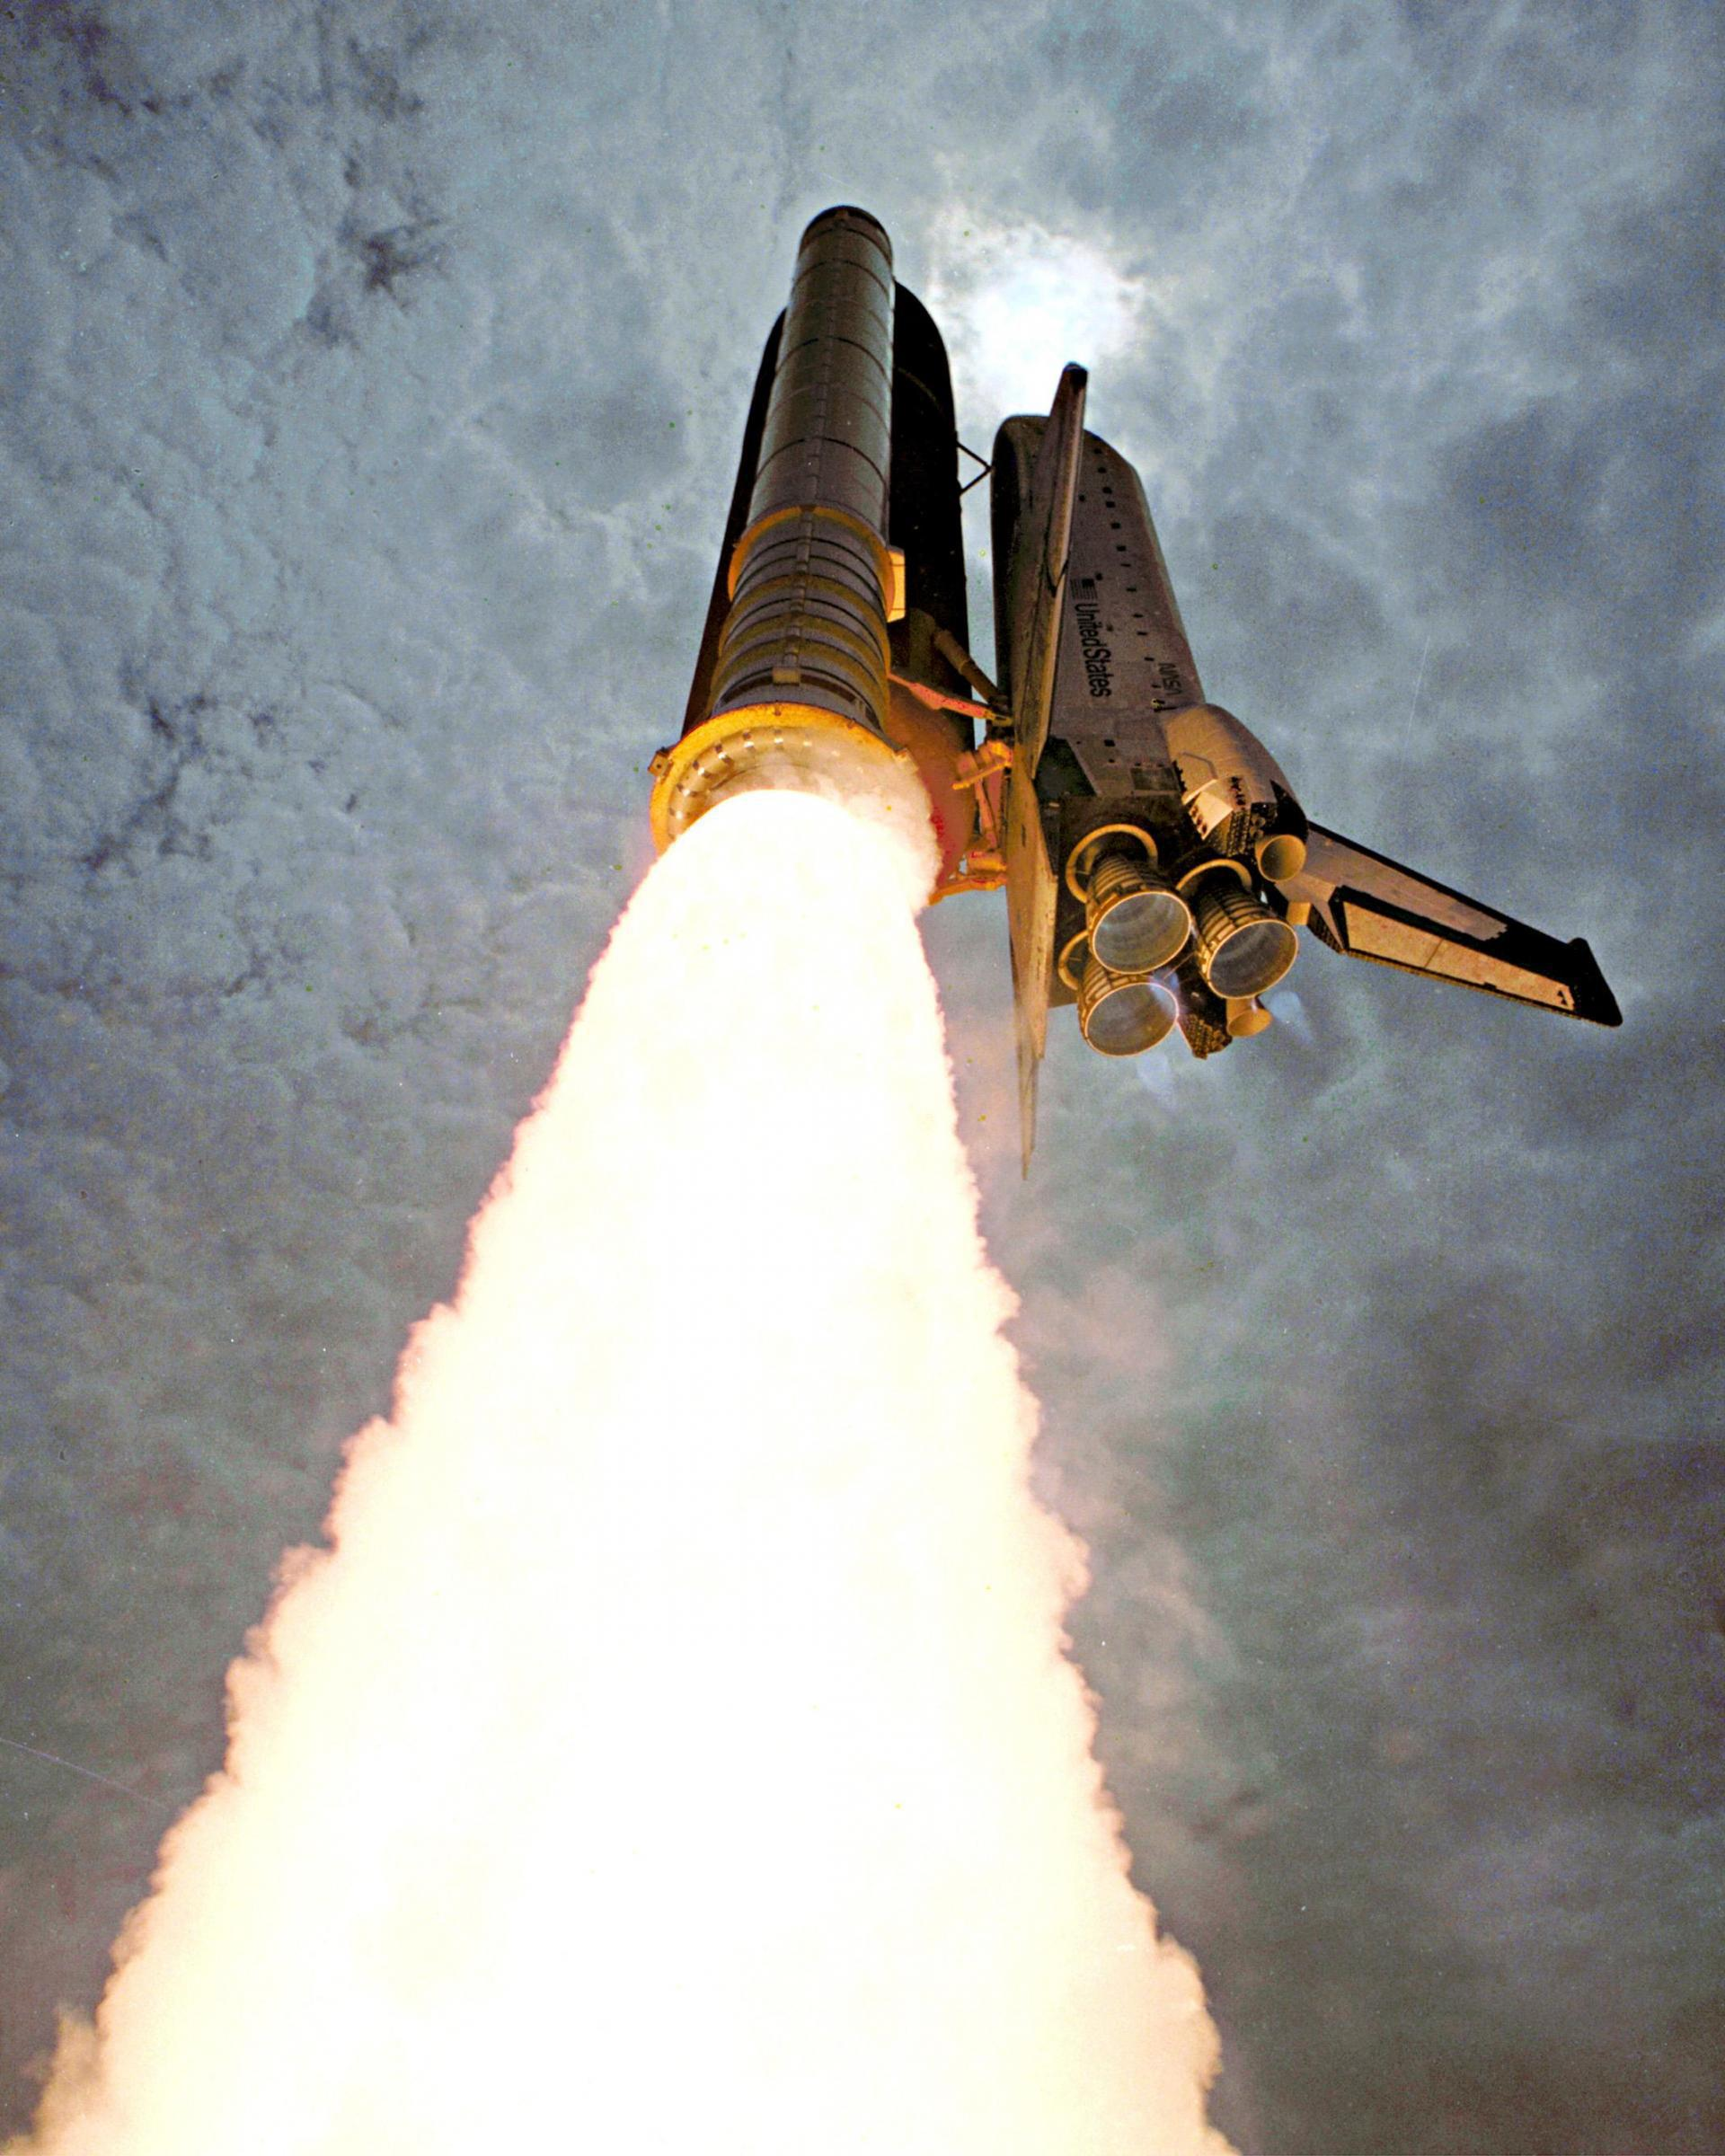 Space Shuttle Columbia / OV-102 | STS-32